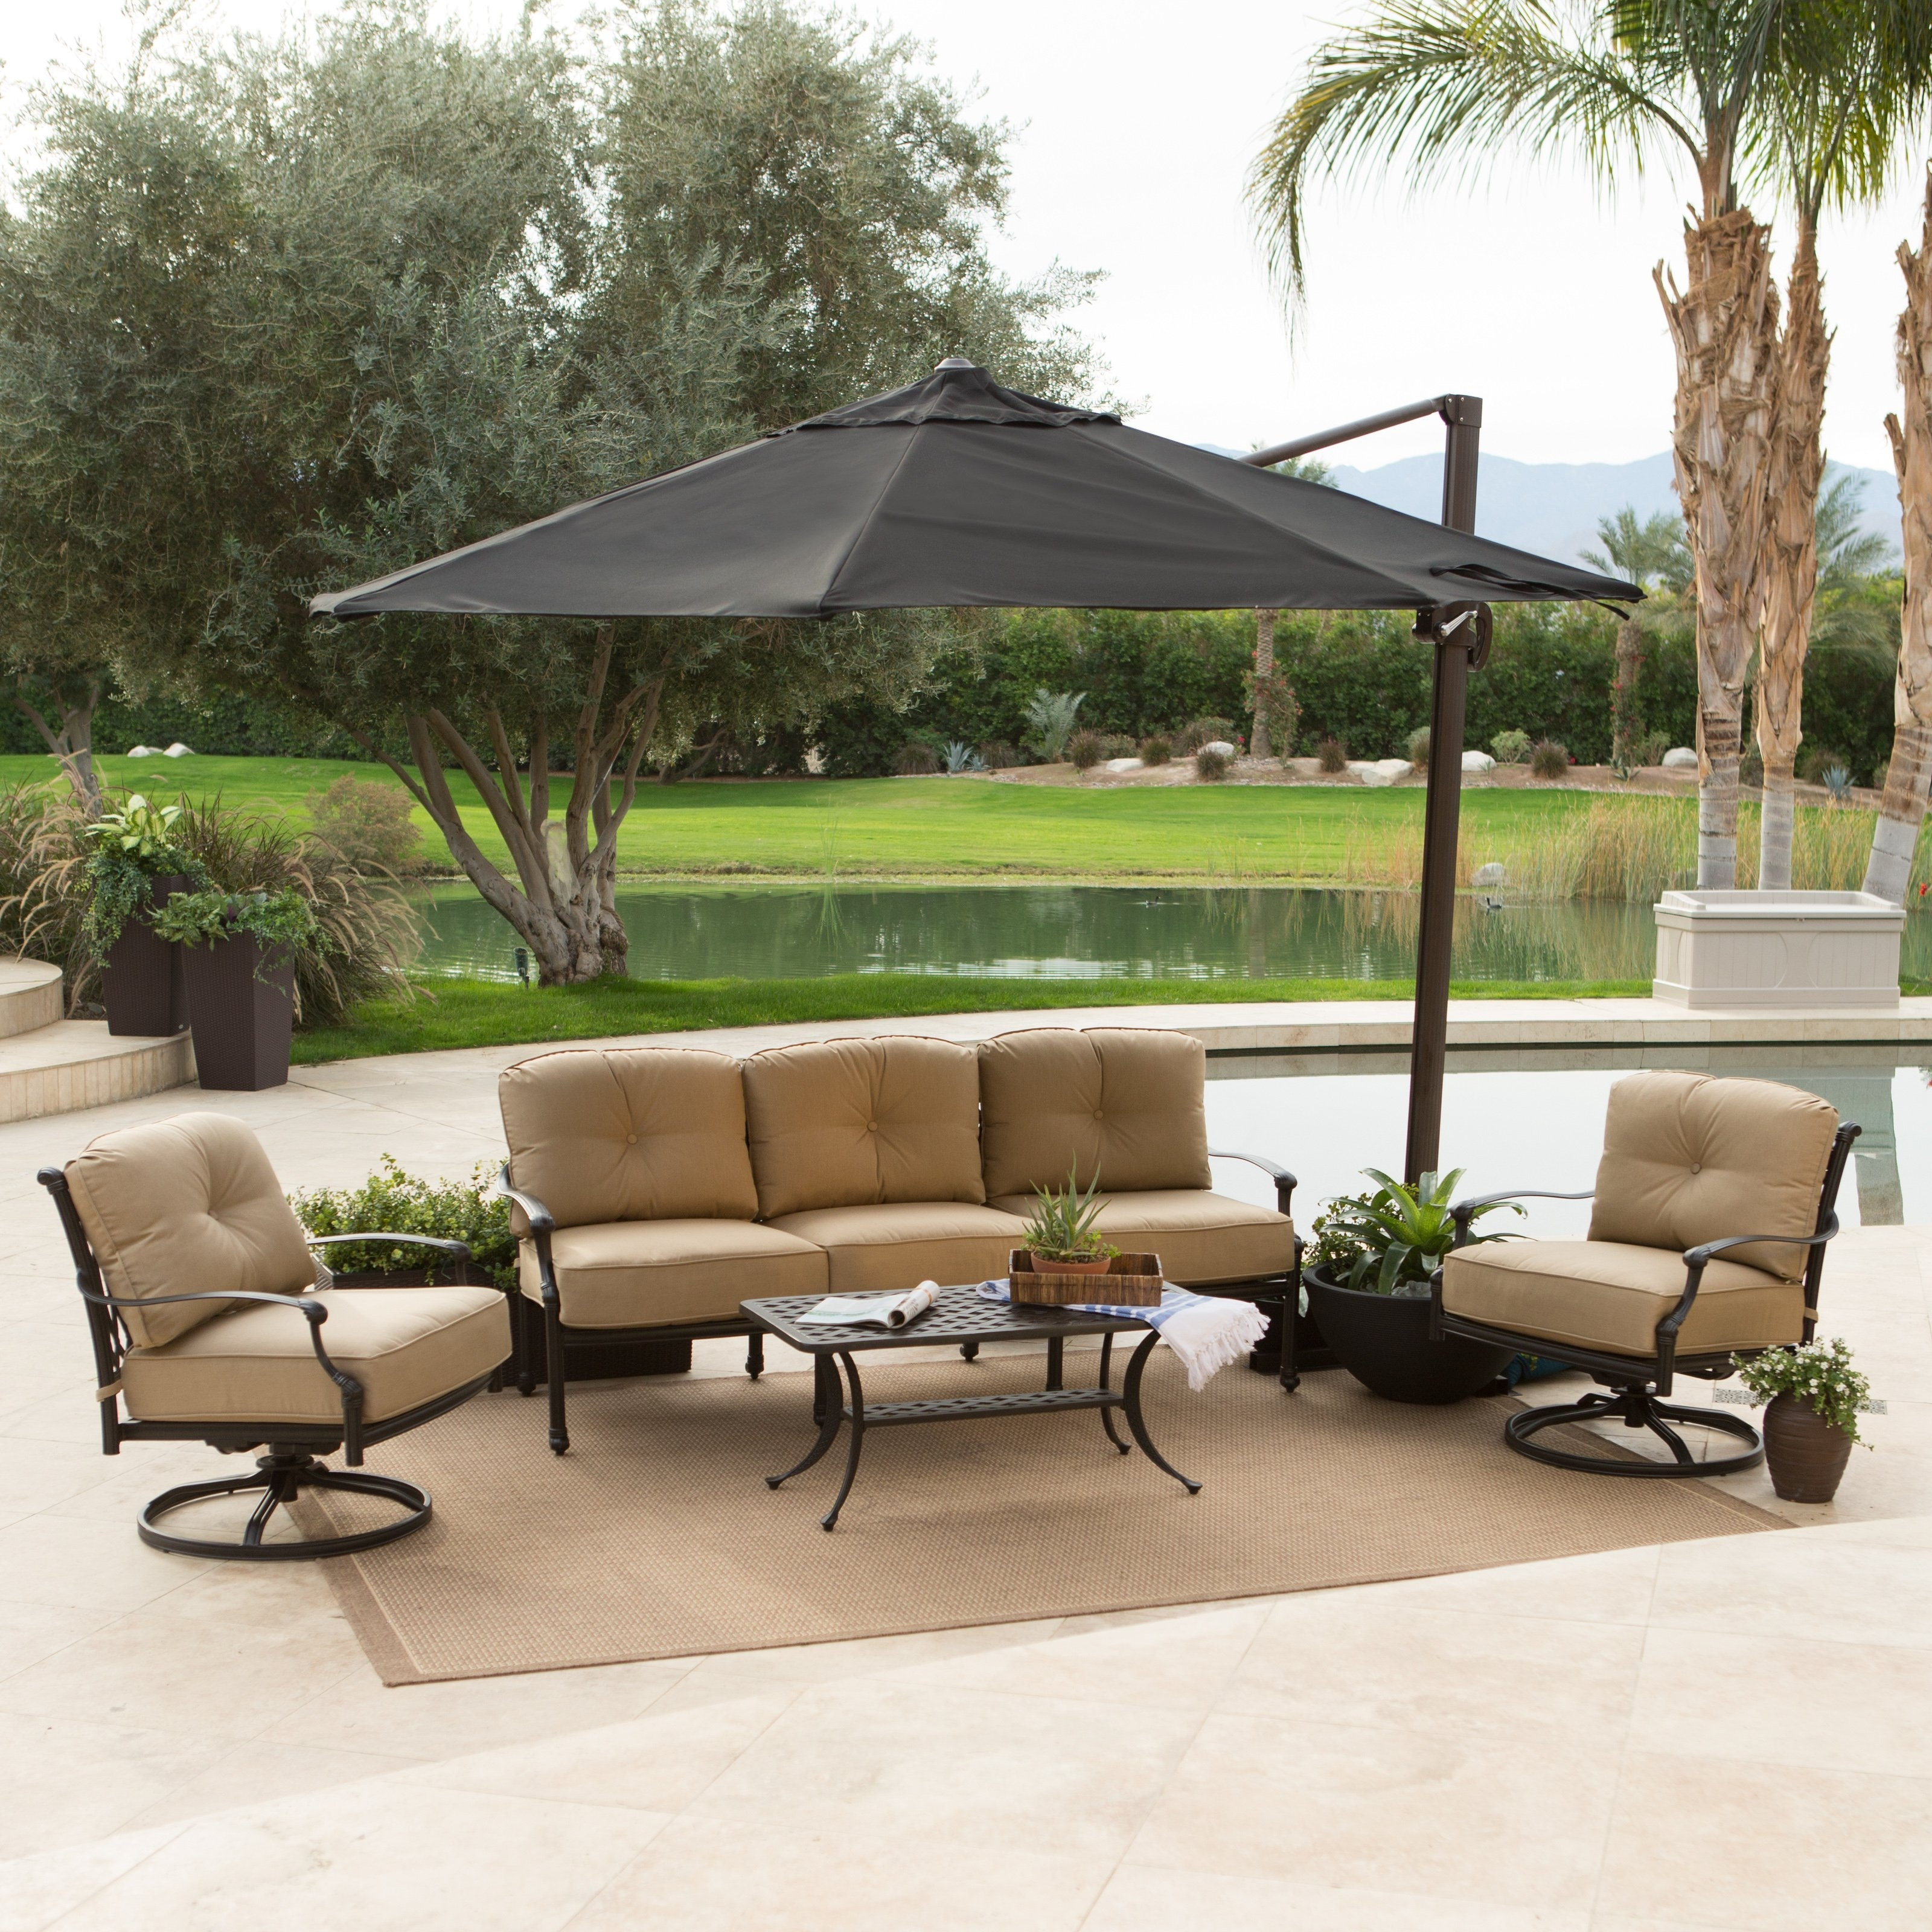 Most Popular Patio Deck Umbrellas Within Cheerful Outdoor Patio Design With Chairs And Table Sets Protected (View 7 of 20)